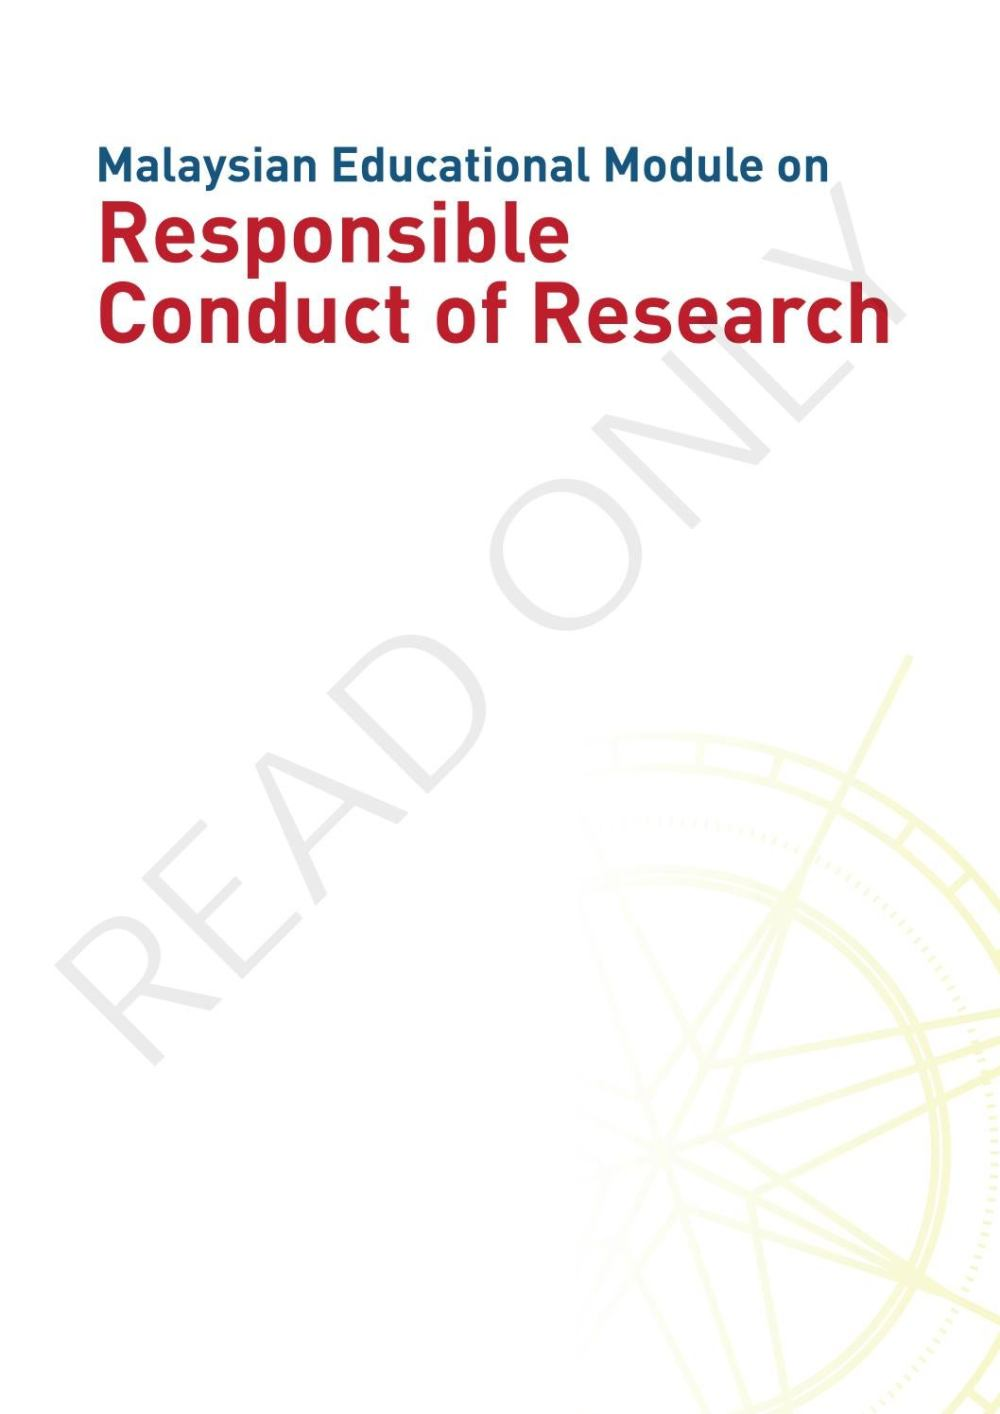 medium resolution of malaysian educational module on responsible conduct of research by academy of sciences malaysia issuu